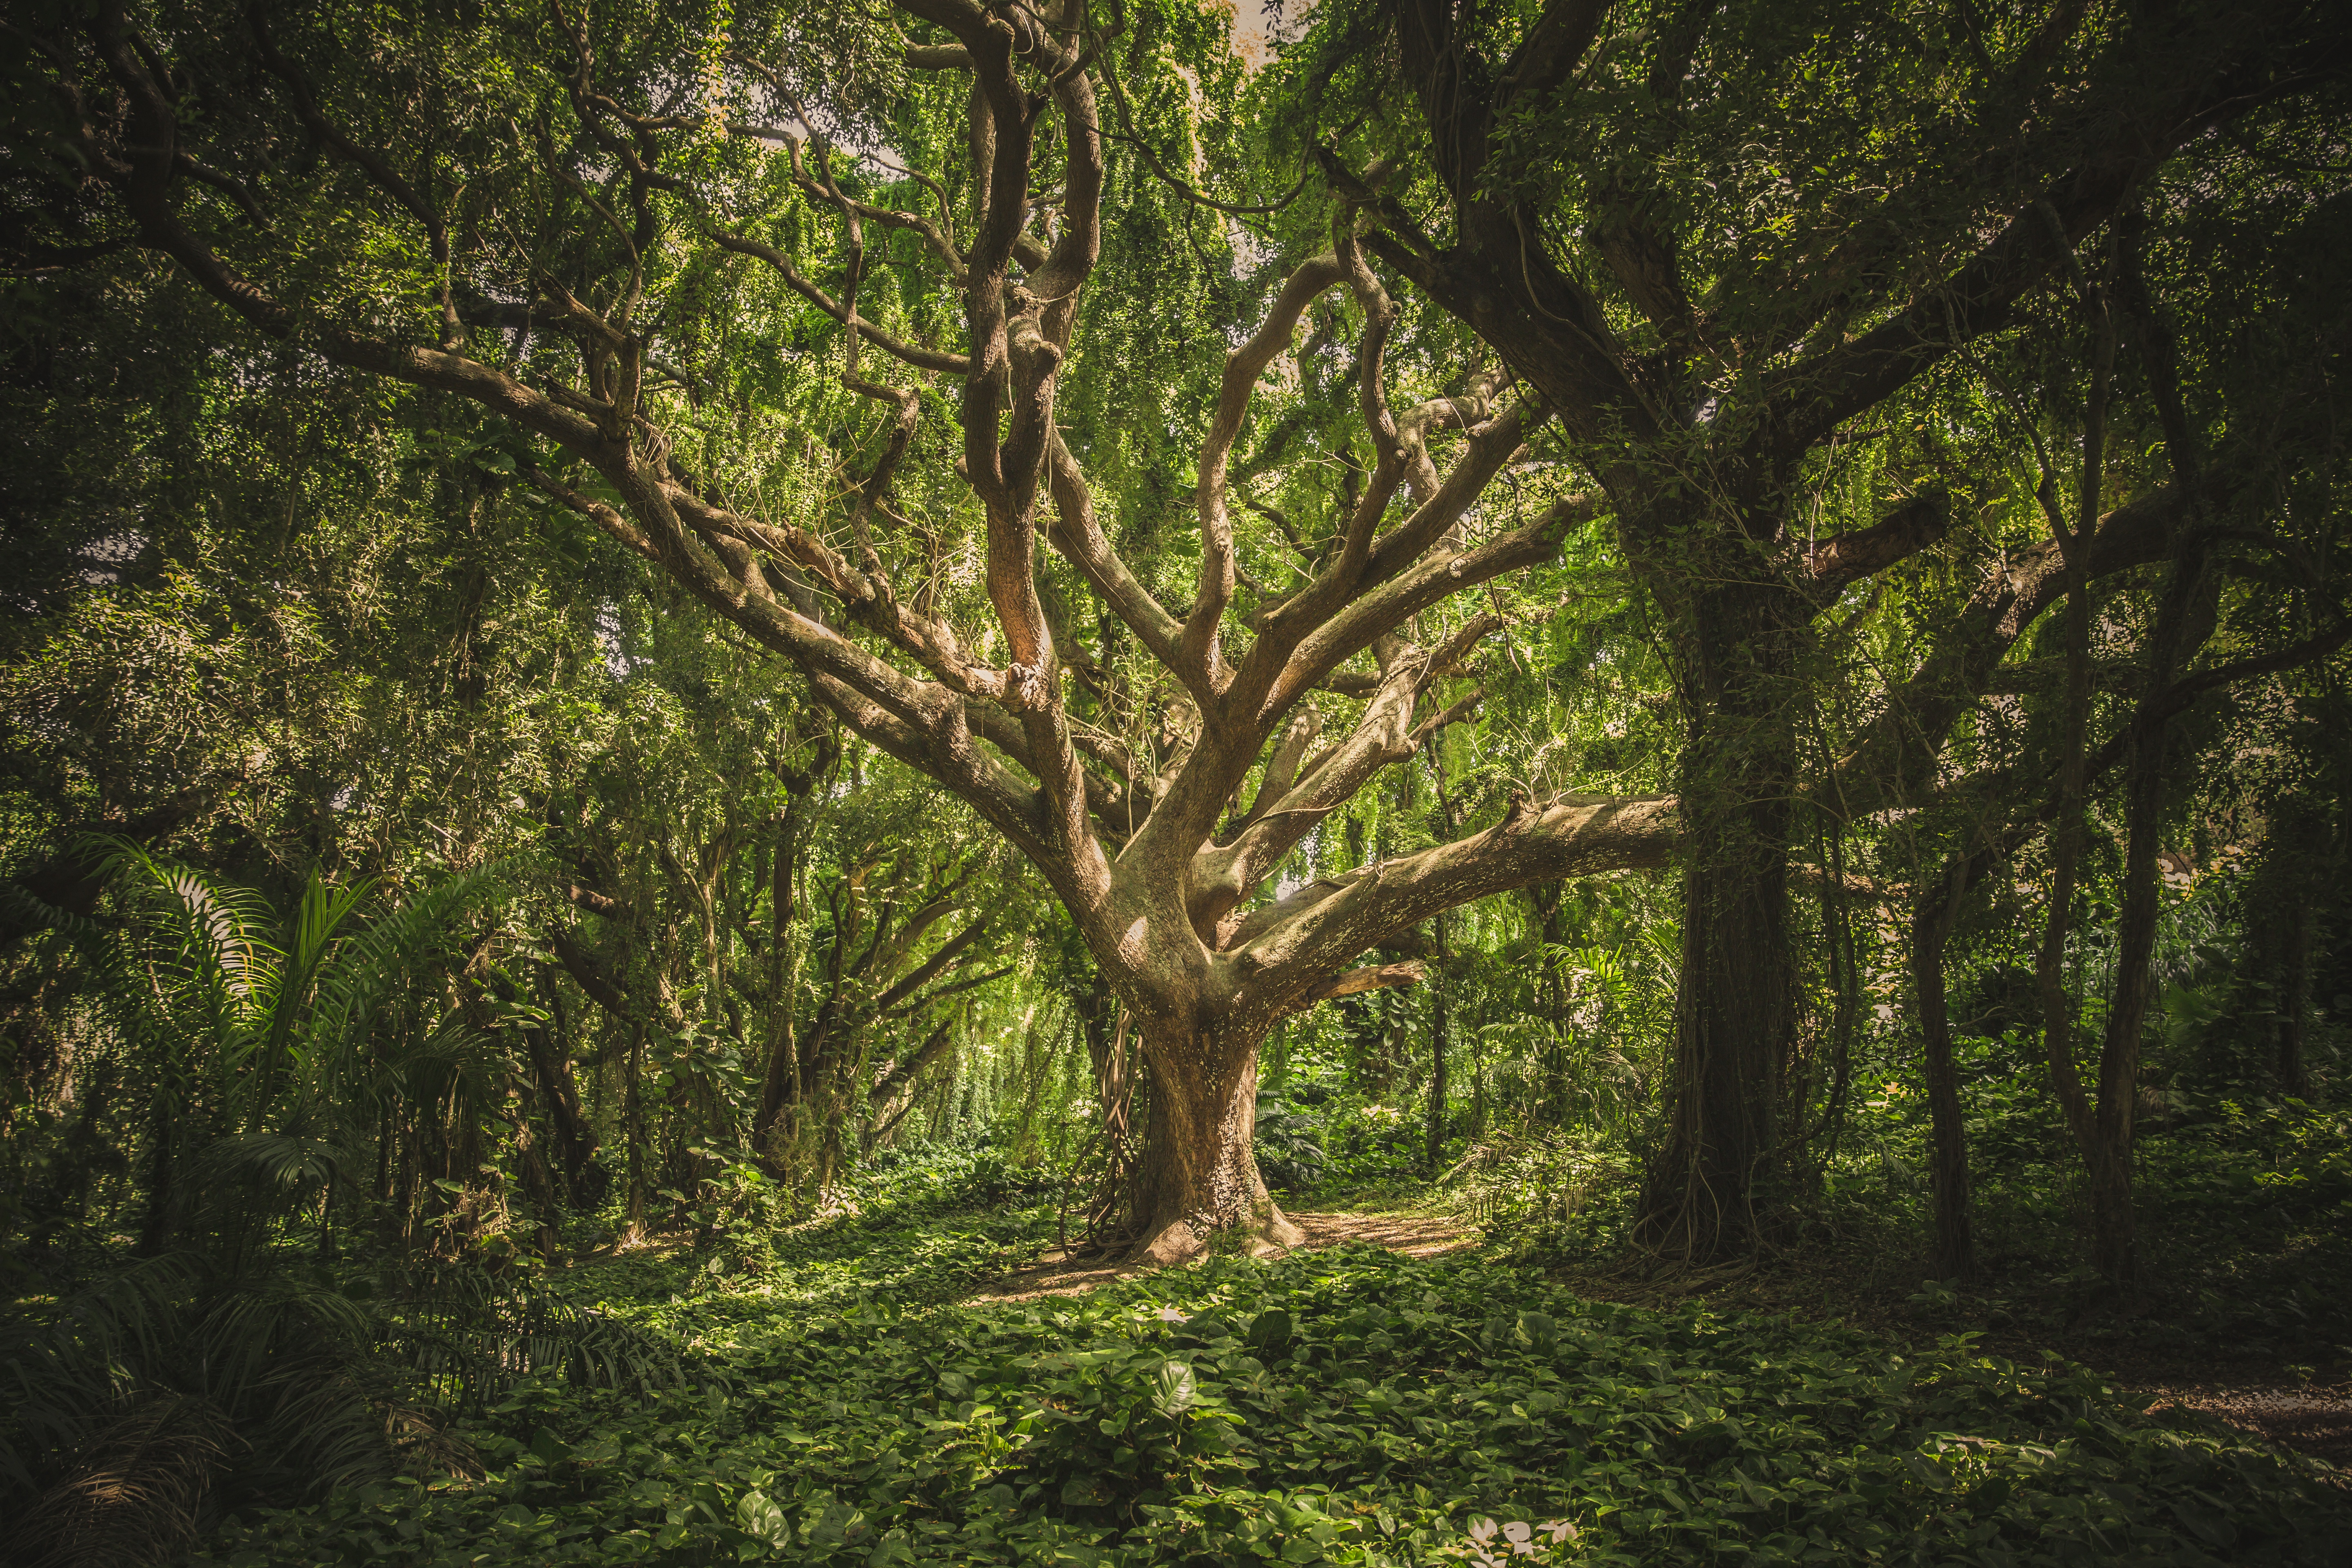 Woods, Tree, Wood, Nature, Forest, HQ Photo